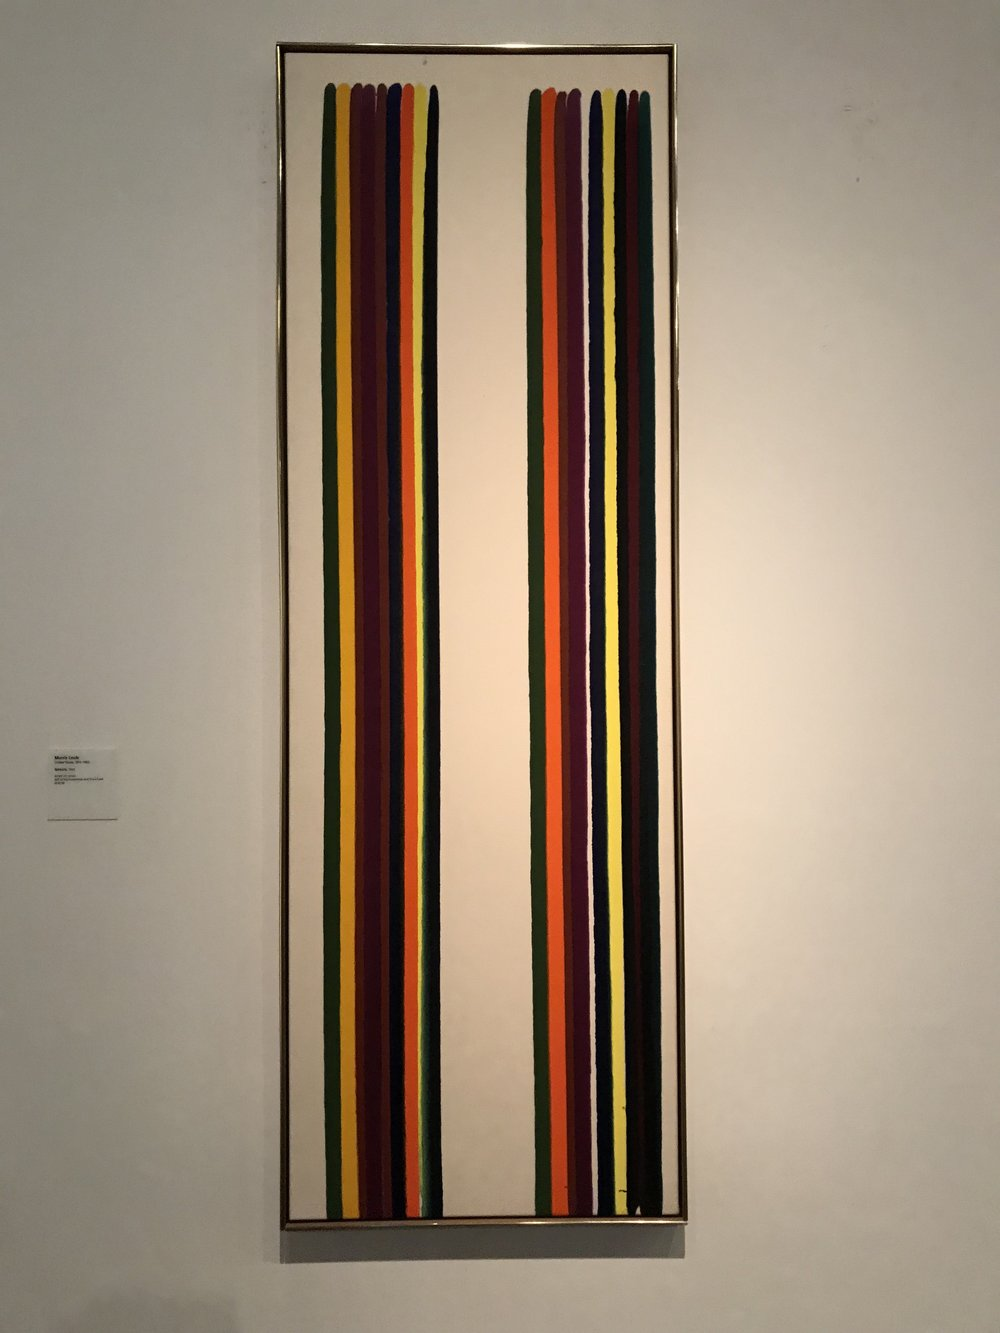 Gemini (1962 - acrylic on canvas) by Morris Louis (1912 -1962) from the United States